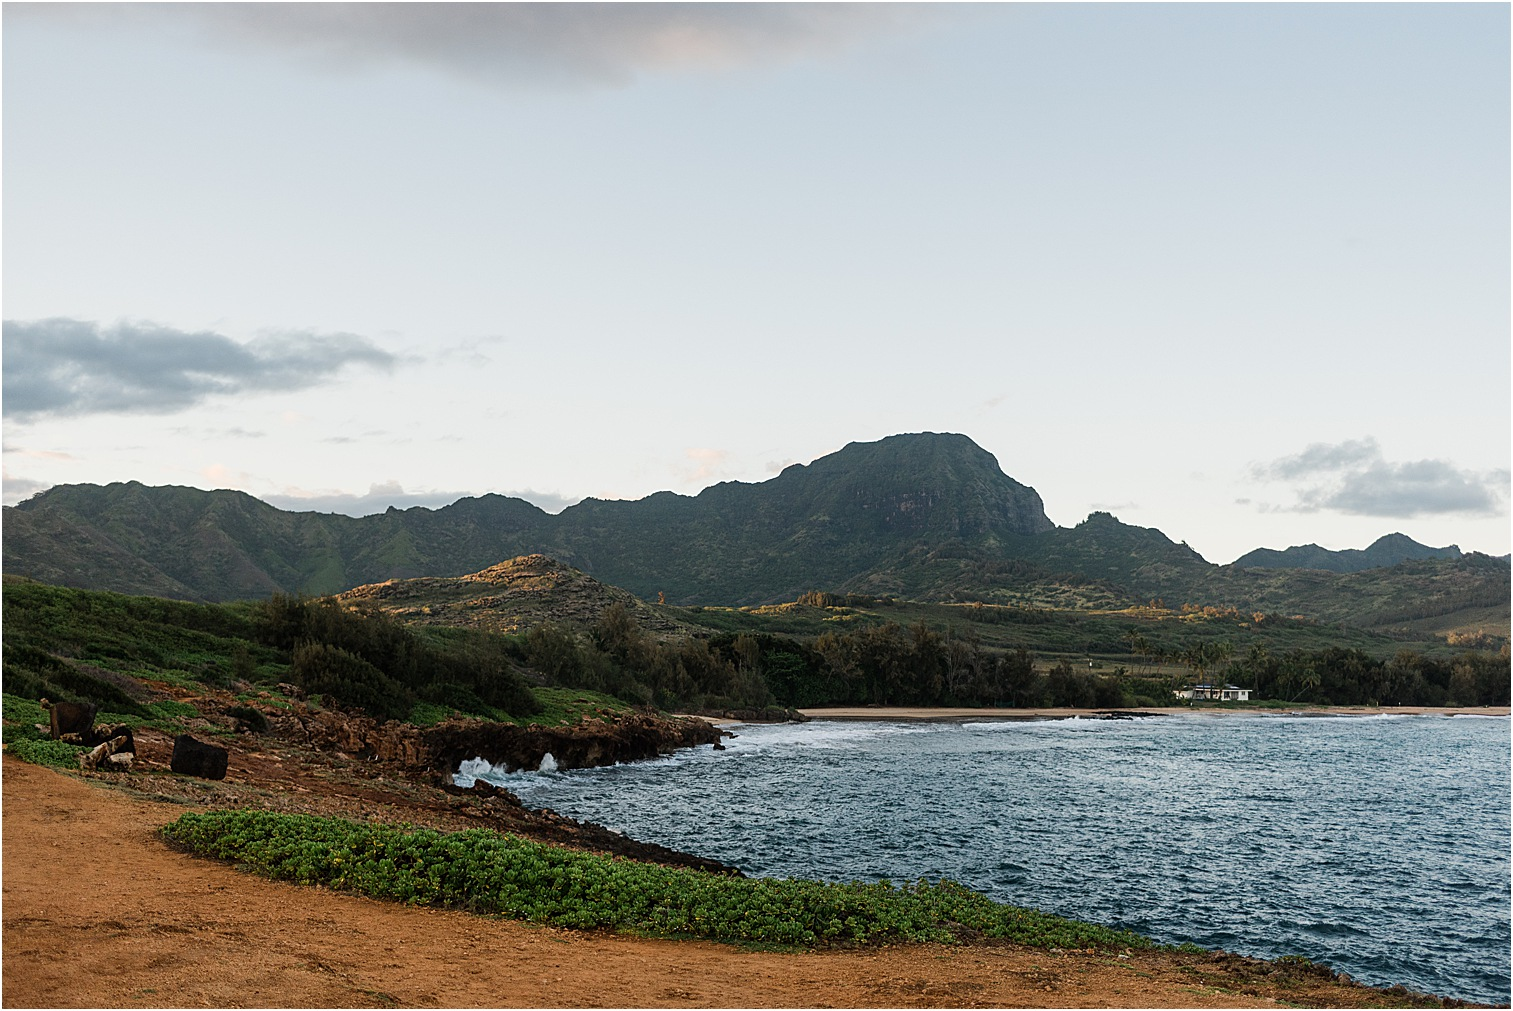 Overlooking Gillin's Beach at Sunset on Kauai